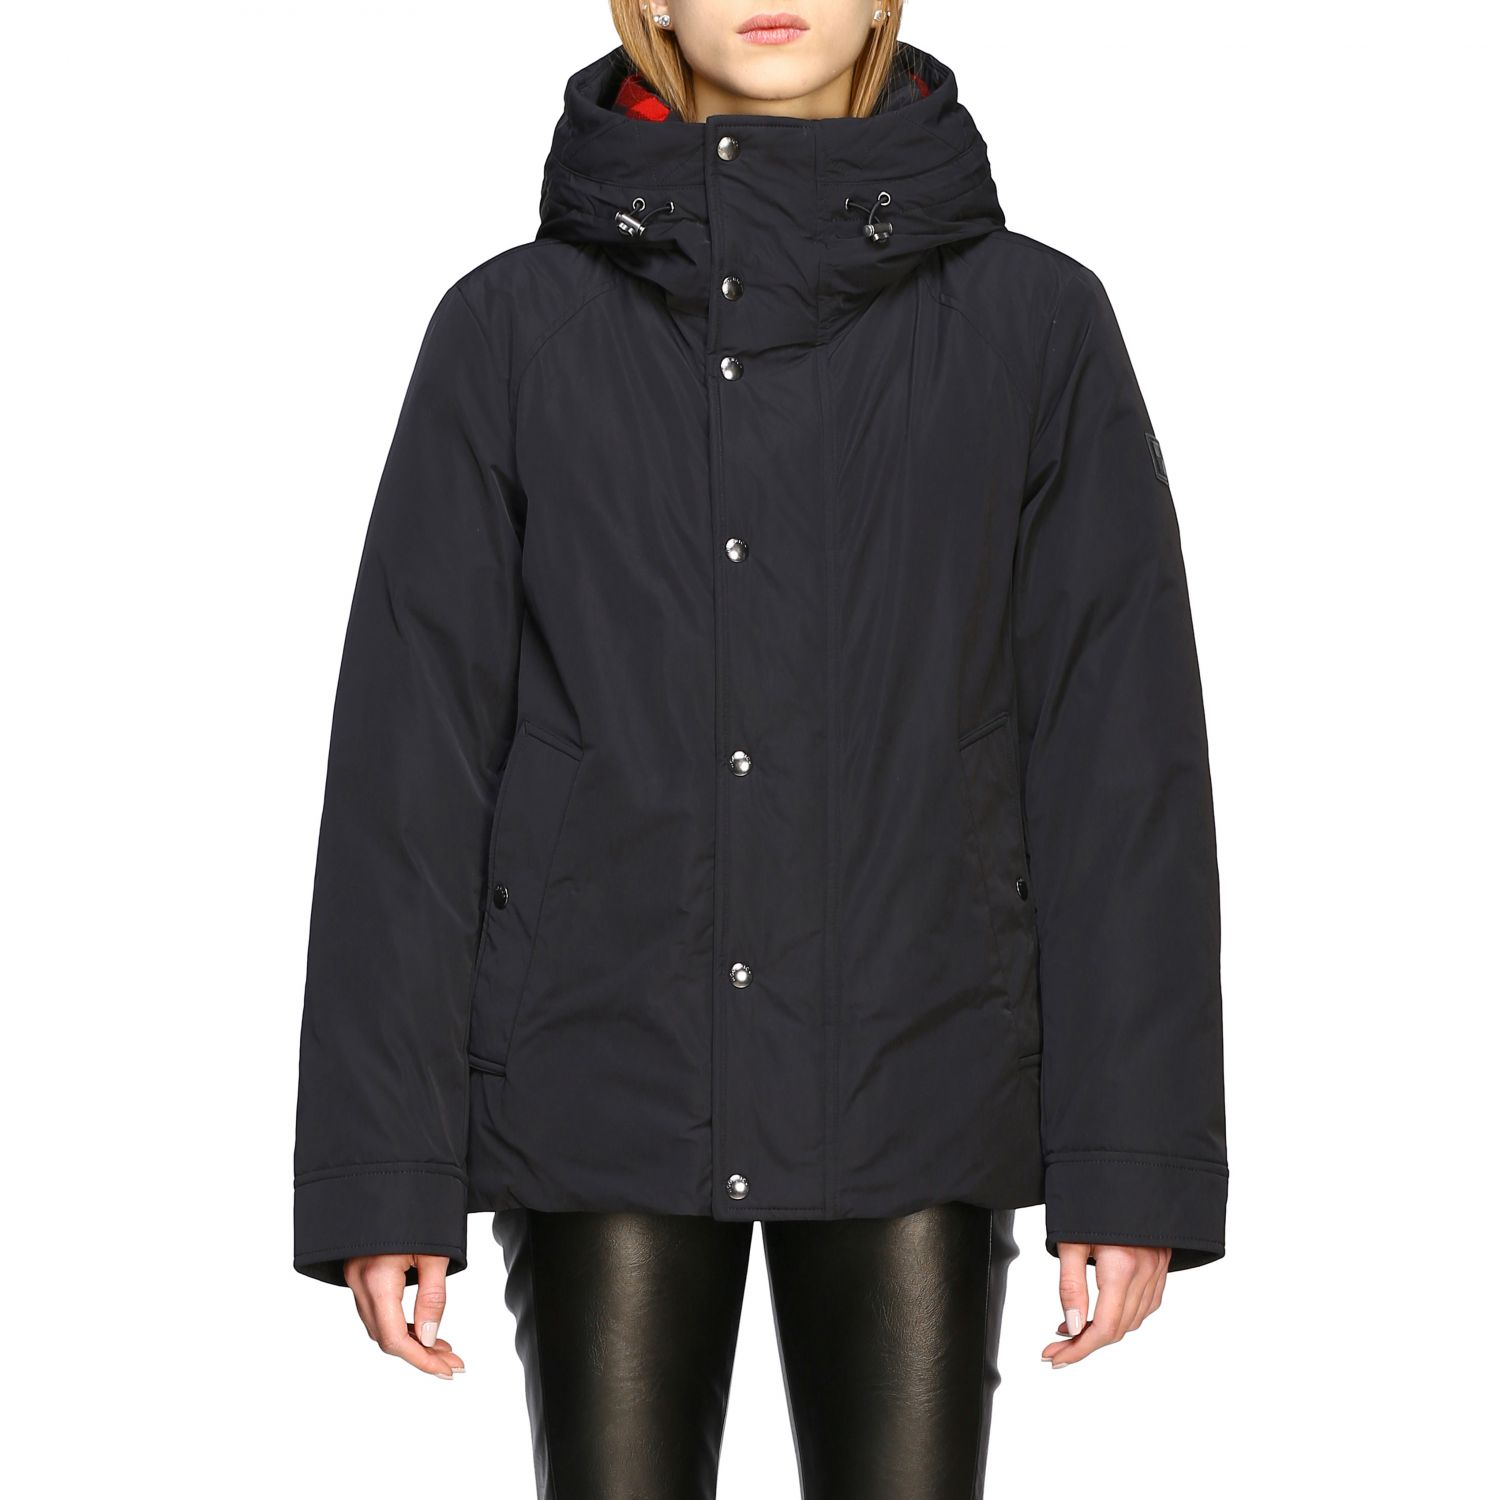 Boundry jacket nylon medio con cappuccio check nero 1